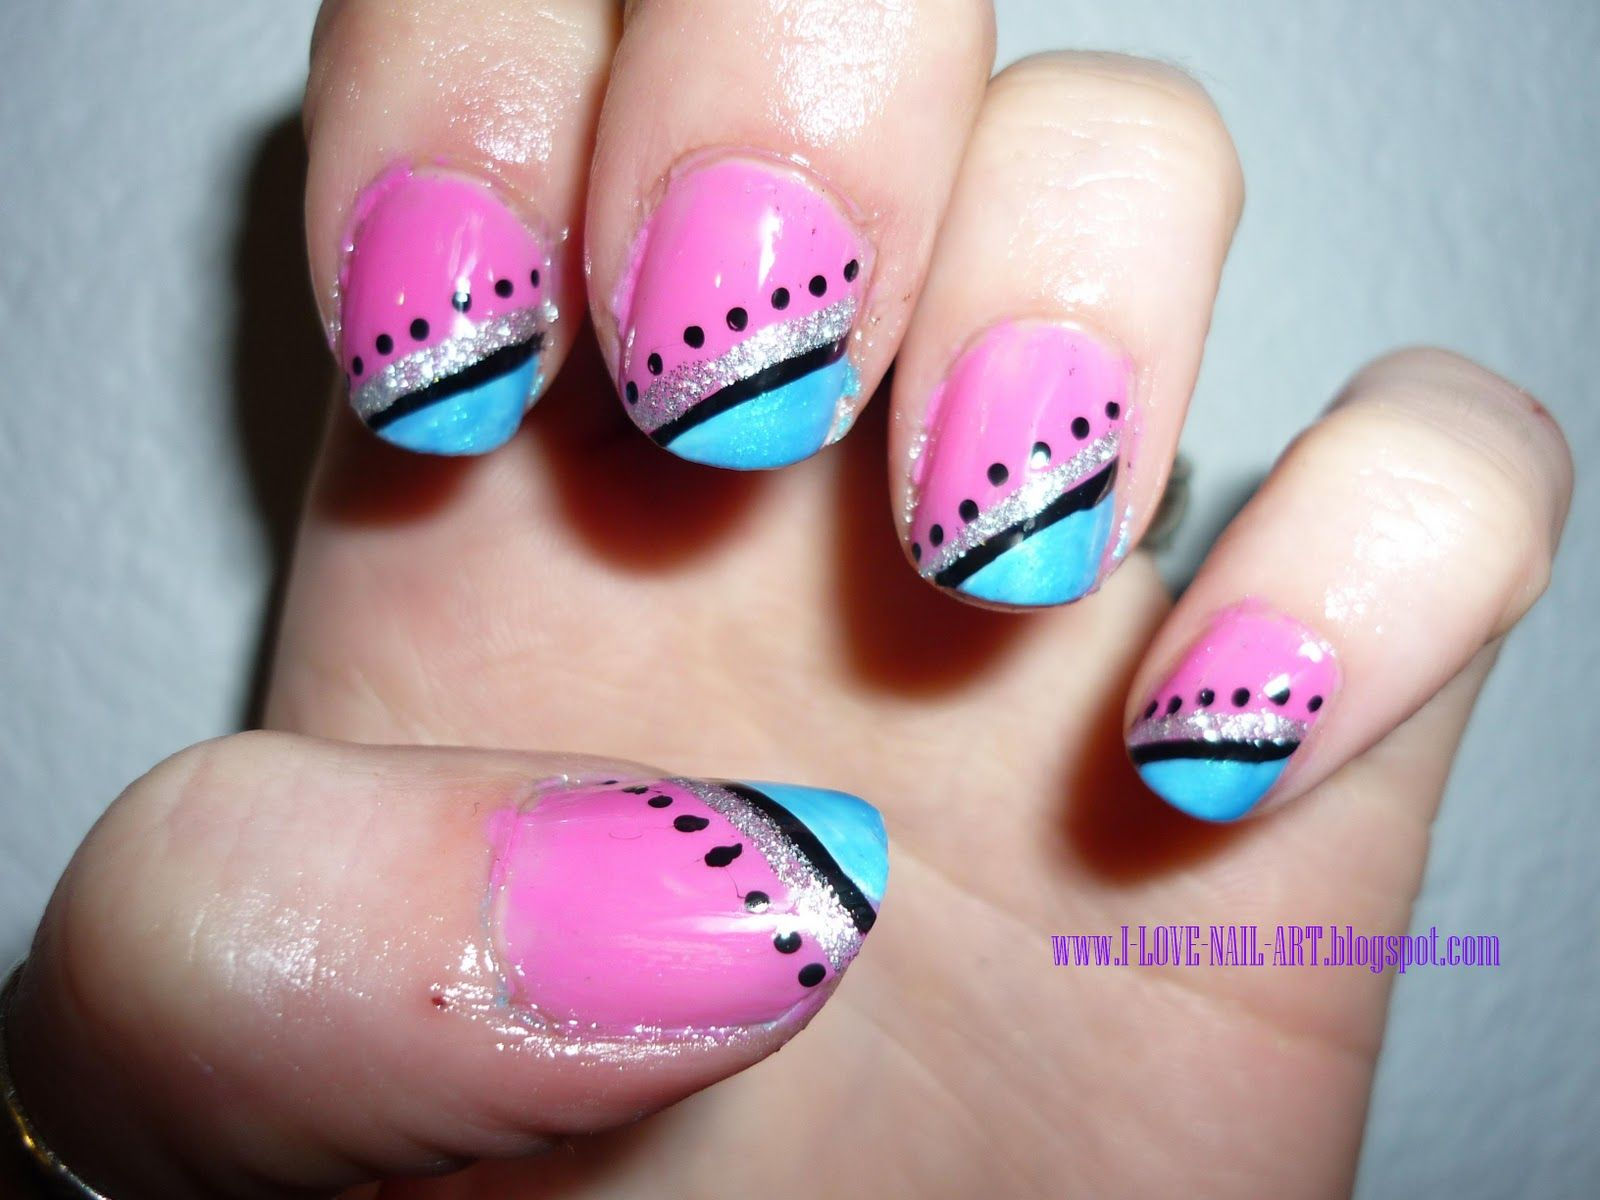 Amazing Nail Polish For Christmas Big Red Carpet Nail Polish Flat Nail Art How To Opi Nail Polish Designs Young Beautiful Nails Art Images WhiteNail Art Designs On Toes 1000  Images About Nail Art Ideas On Pinterest | Zebra Nail ..